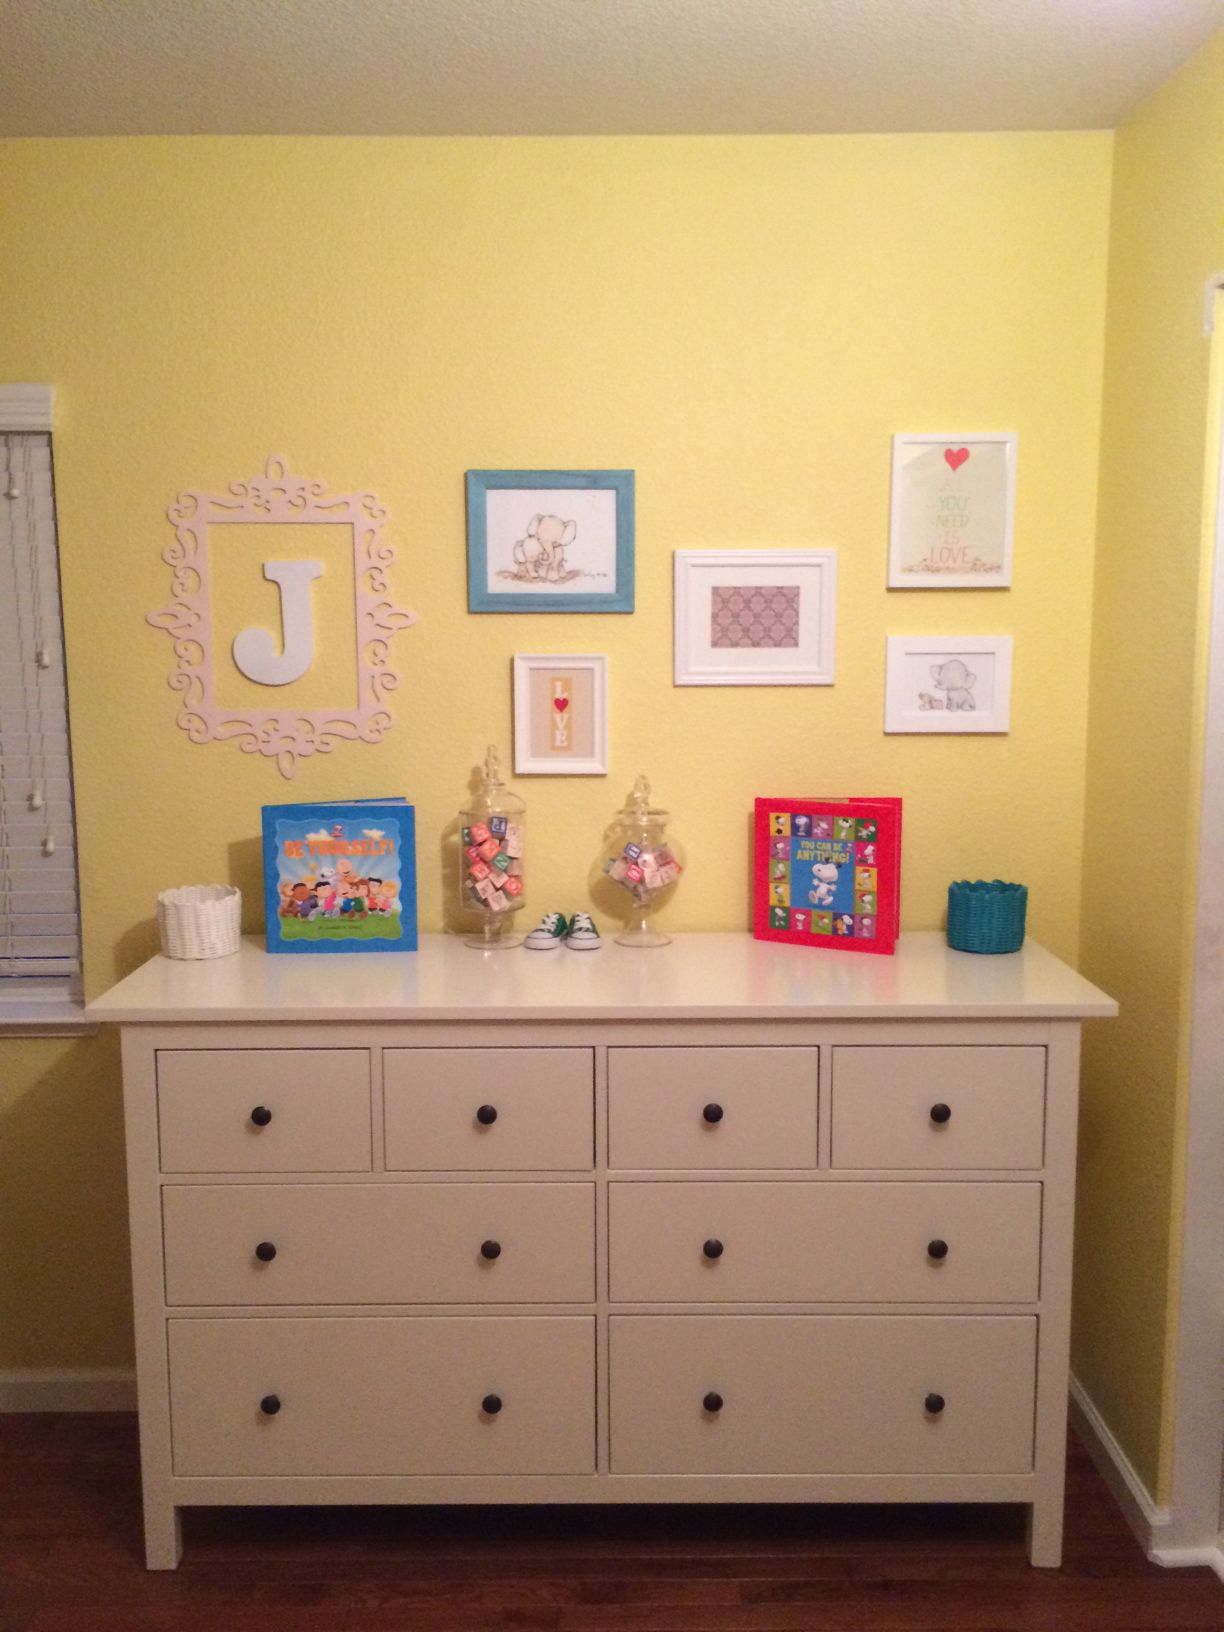 Nursery gallery wall | JMD | Pinterest | Nursery gallery walls ...